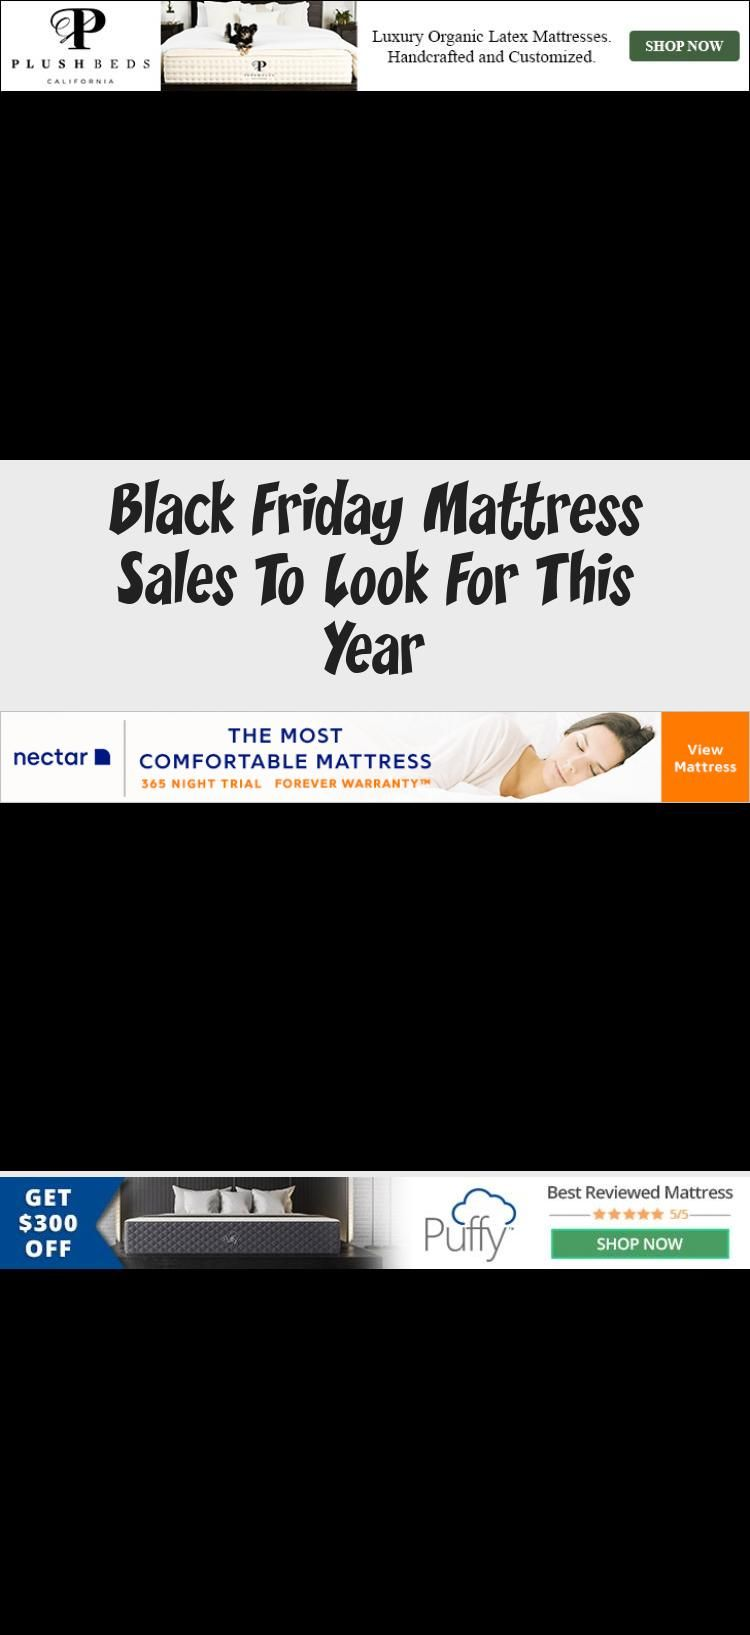 Read Now Don T Miss Out On The Black Friday Mattress Sales This Year Black Friday Shopping Is Going To In 2020 Black Friday Mattress Sale Mattress Sales Black Friday